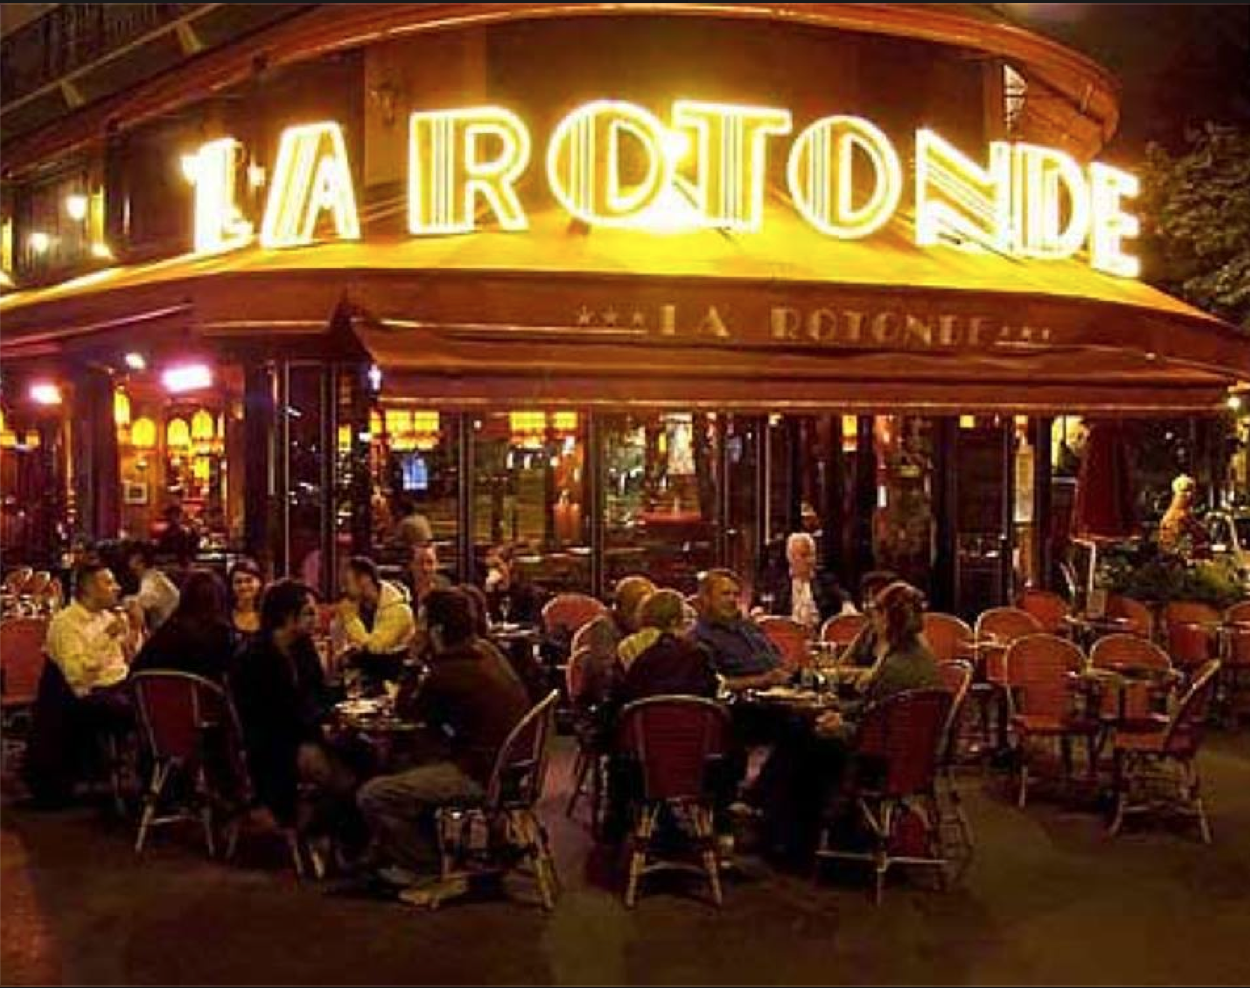 La Rotonde is Our Go To Neighborhood Brasserie Frequented by Ghosts of Hemingway